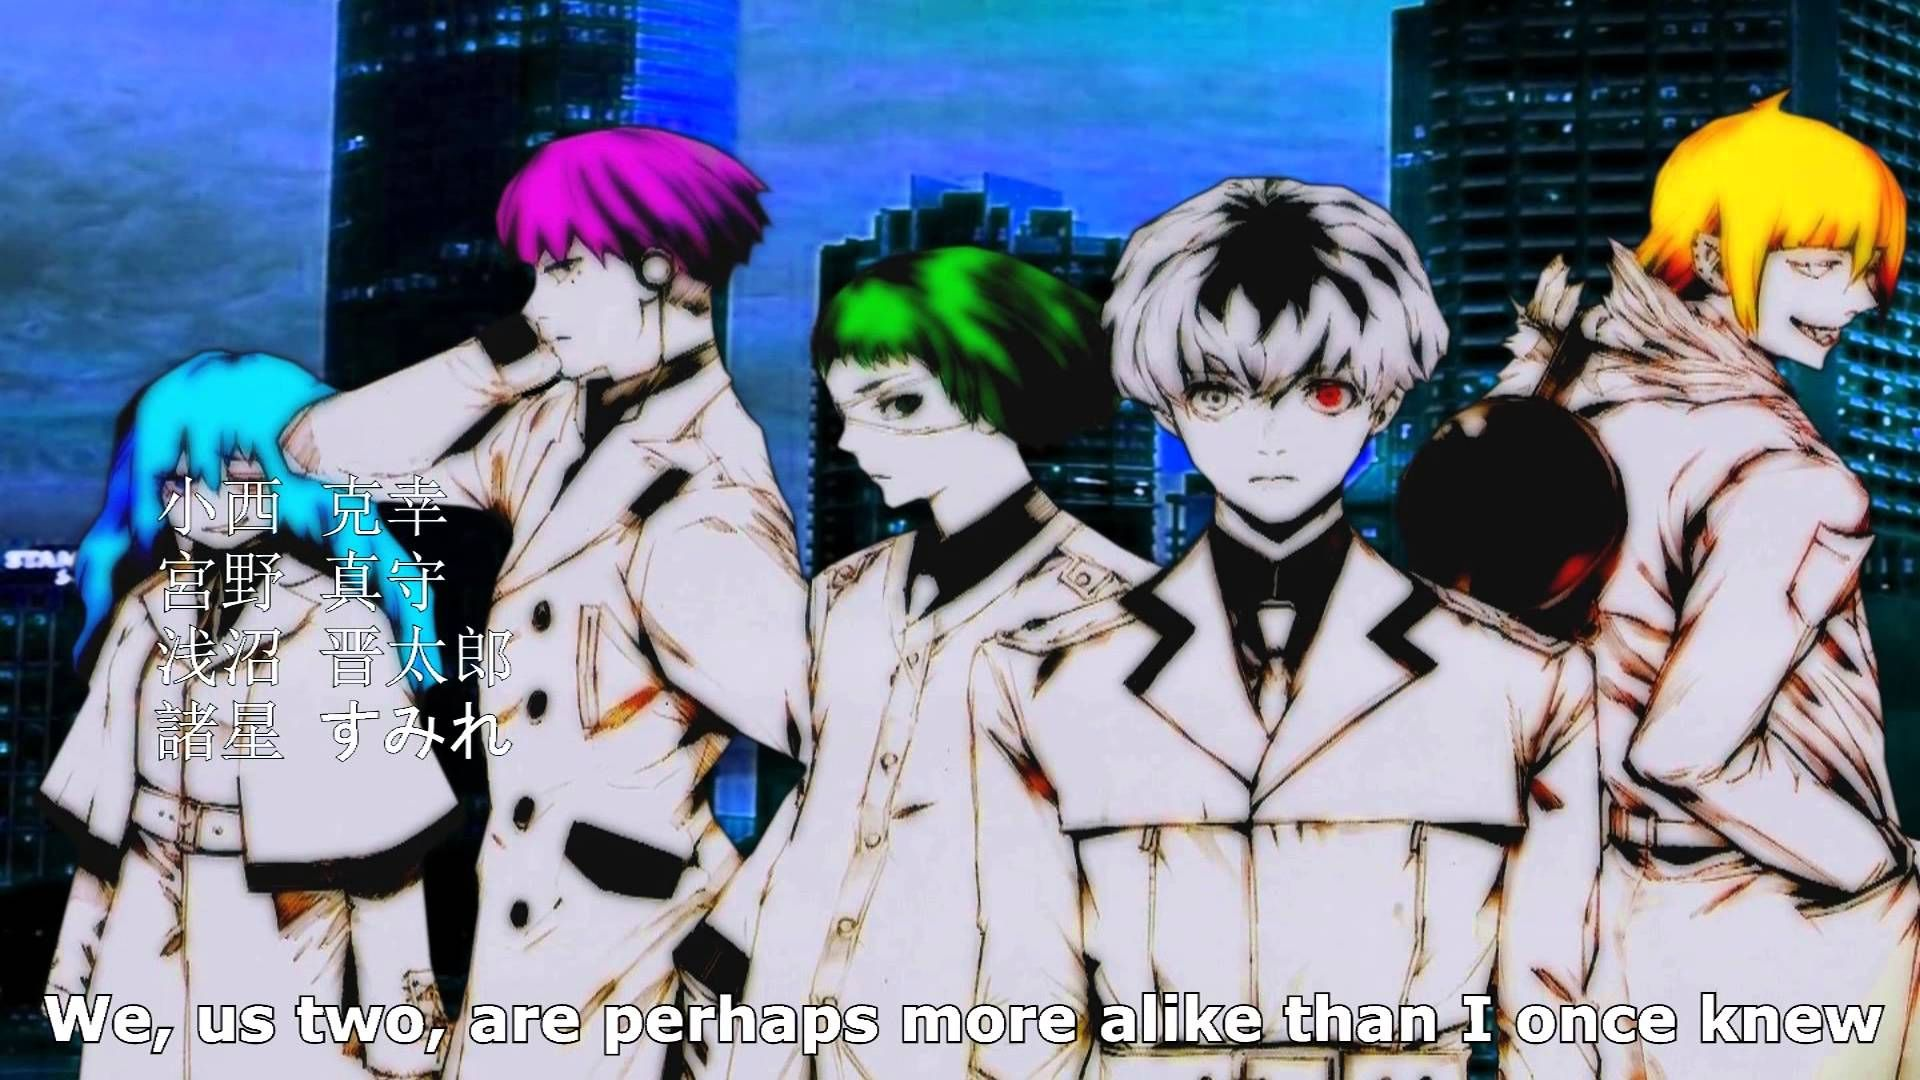 Tokyo Ghoul: re to end soon! Staff will Focus on Anime production?